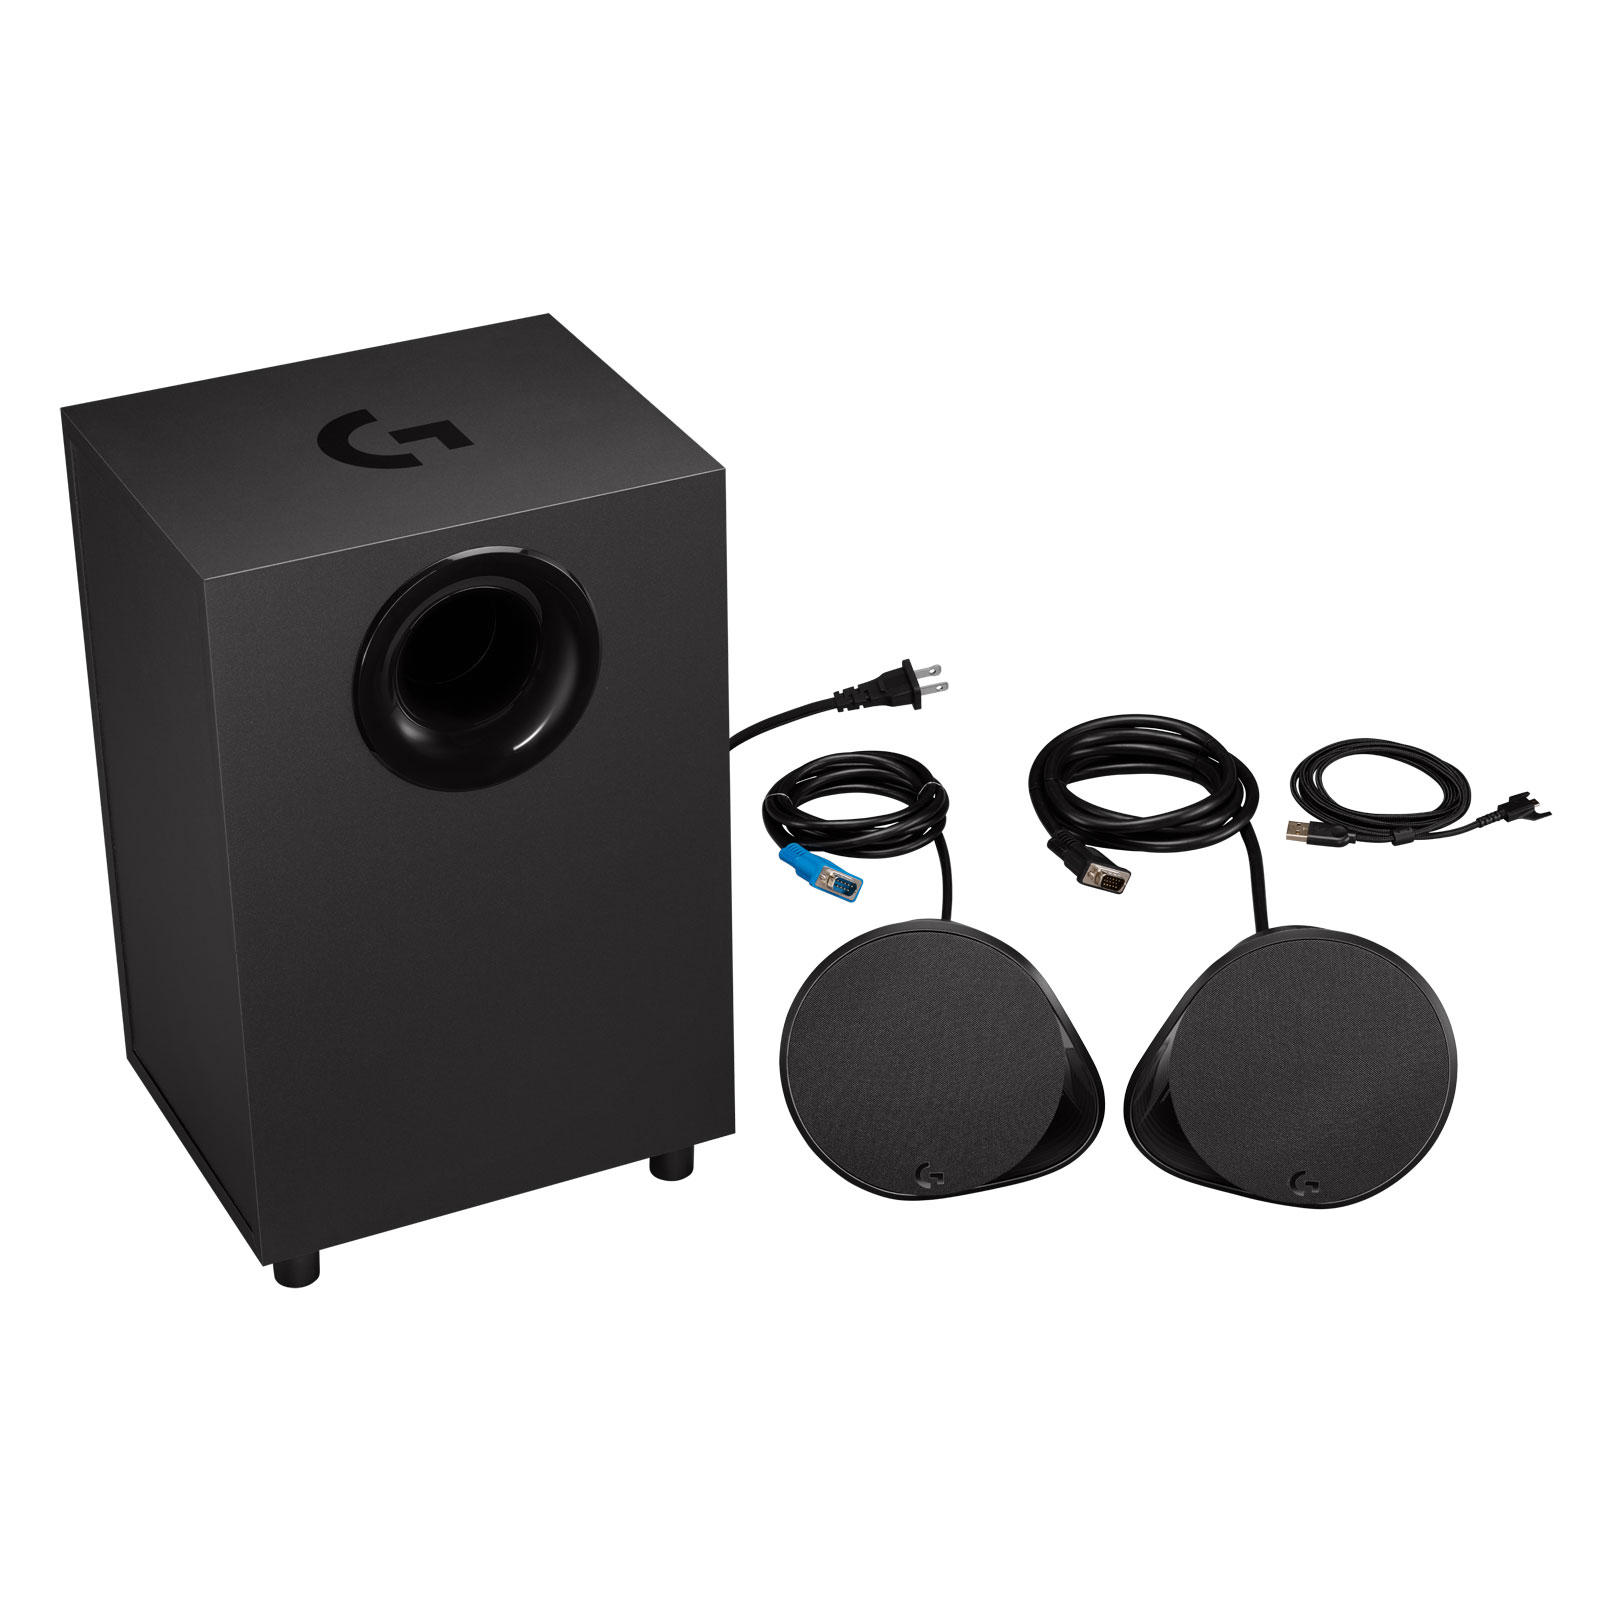 Logitech 2HP+Caisson  G560 LightSync Gaming Speakers - Enceinte PC Logitech - 2